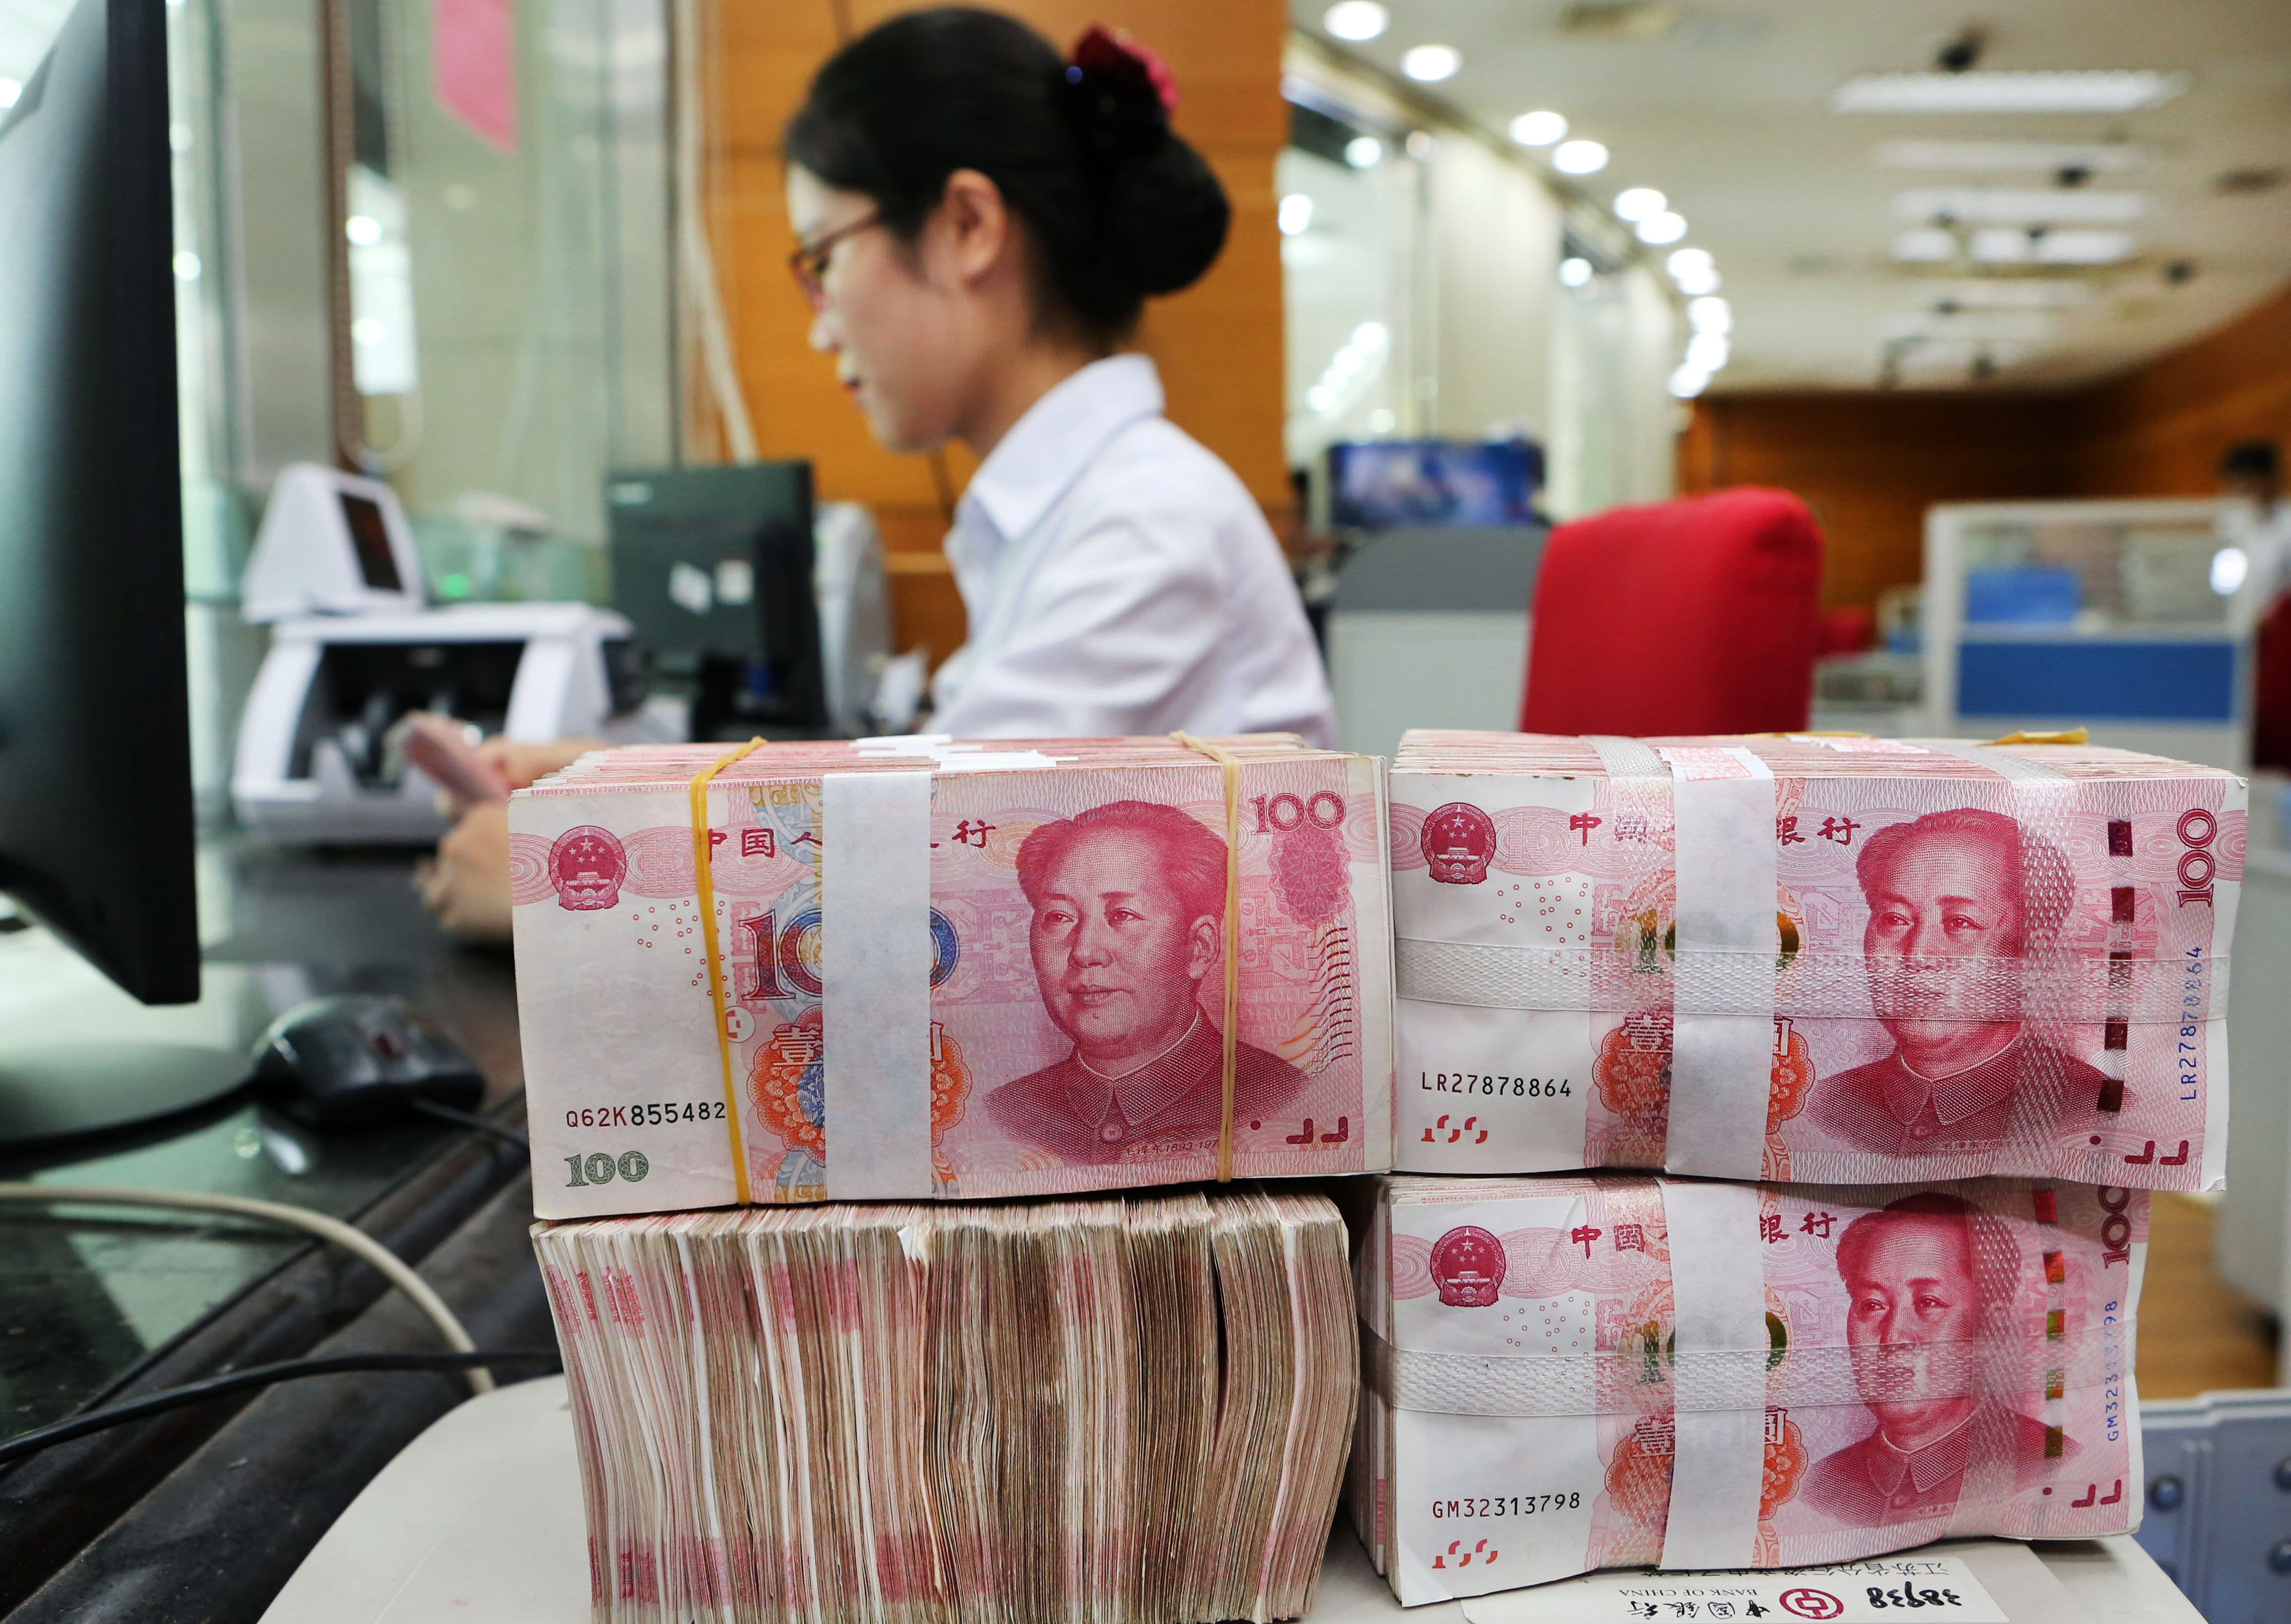 China's top banking regulator: Any yuan bears will suffer 'heavy losses'